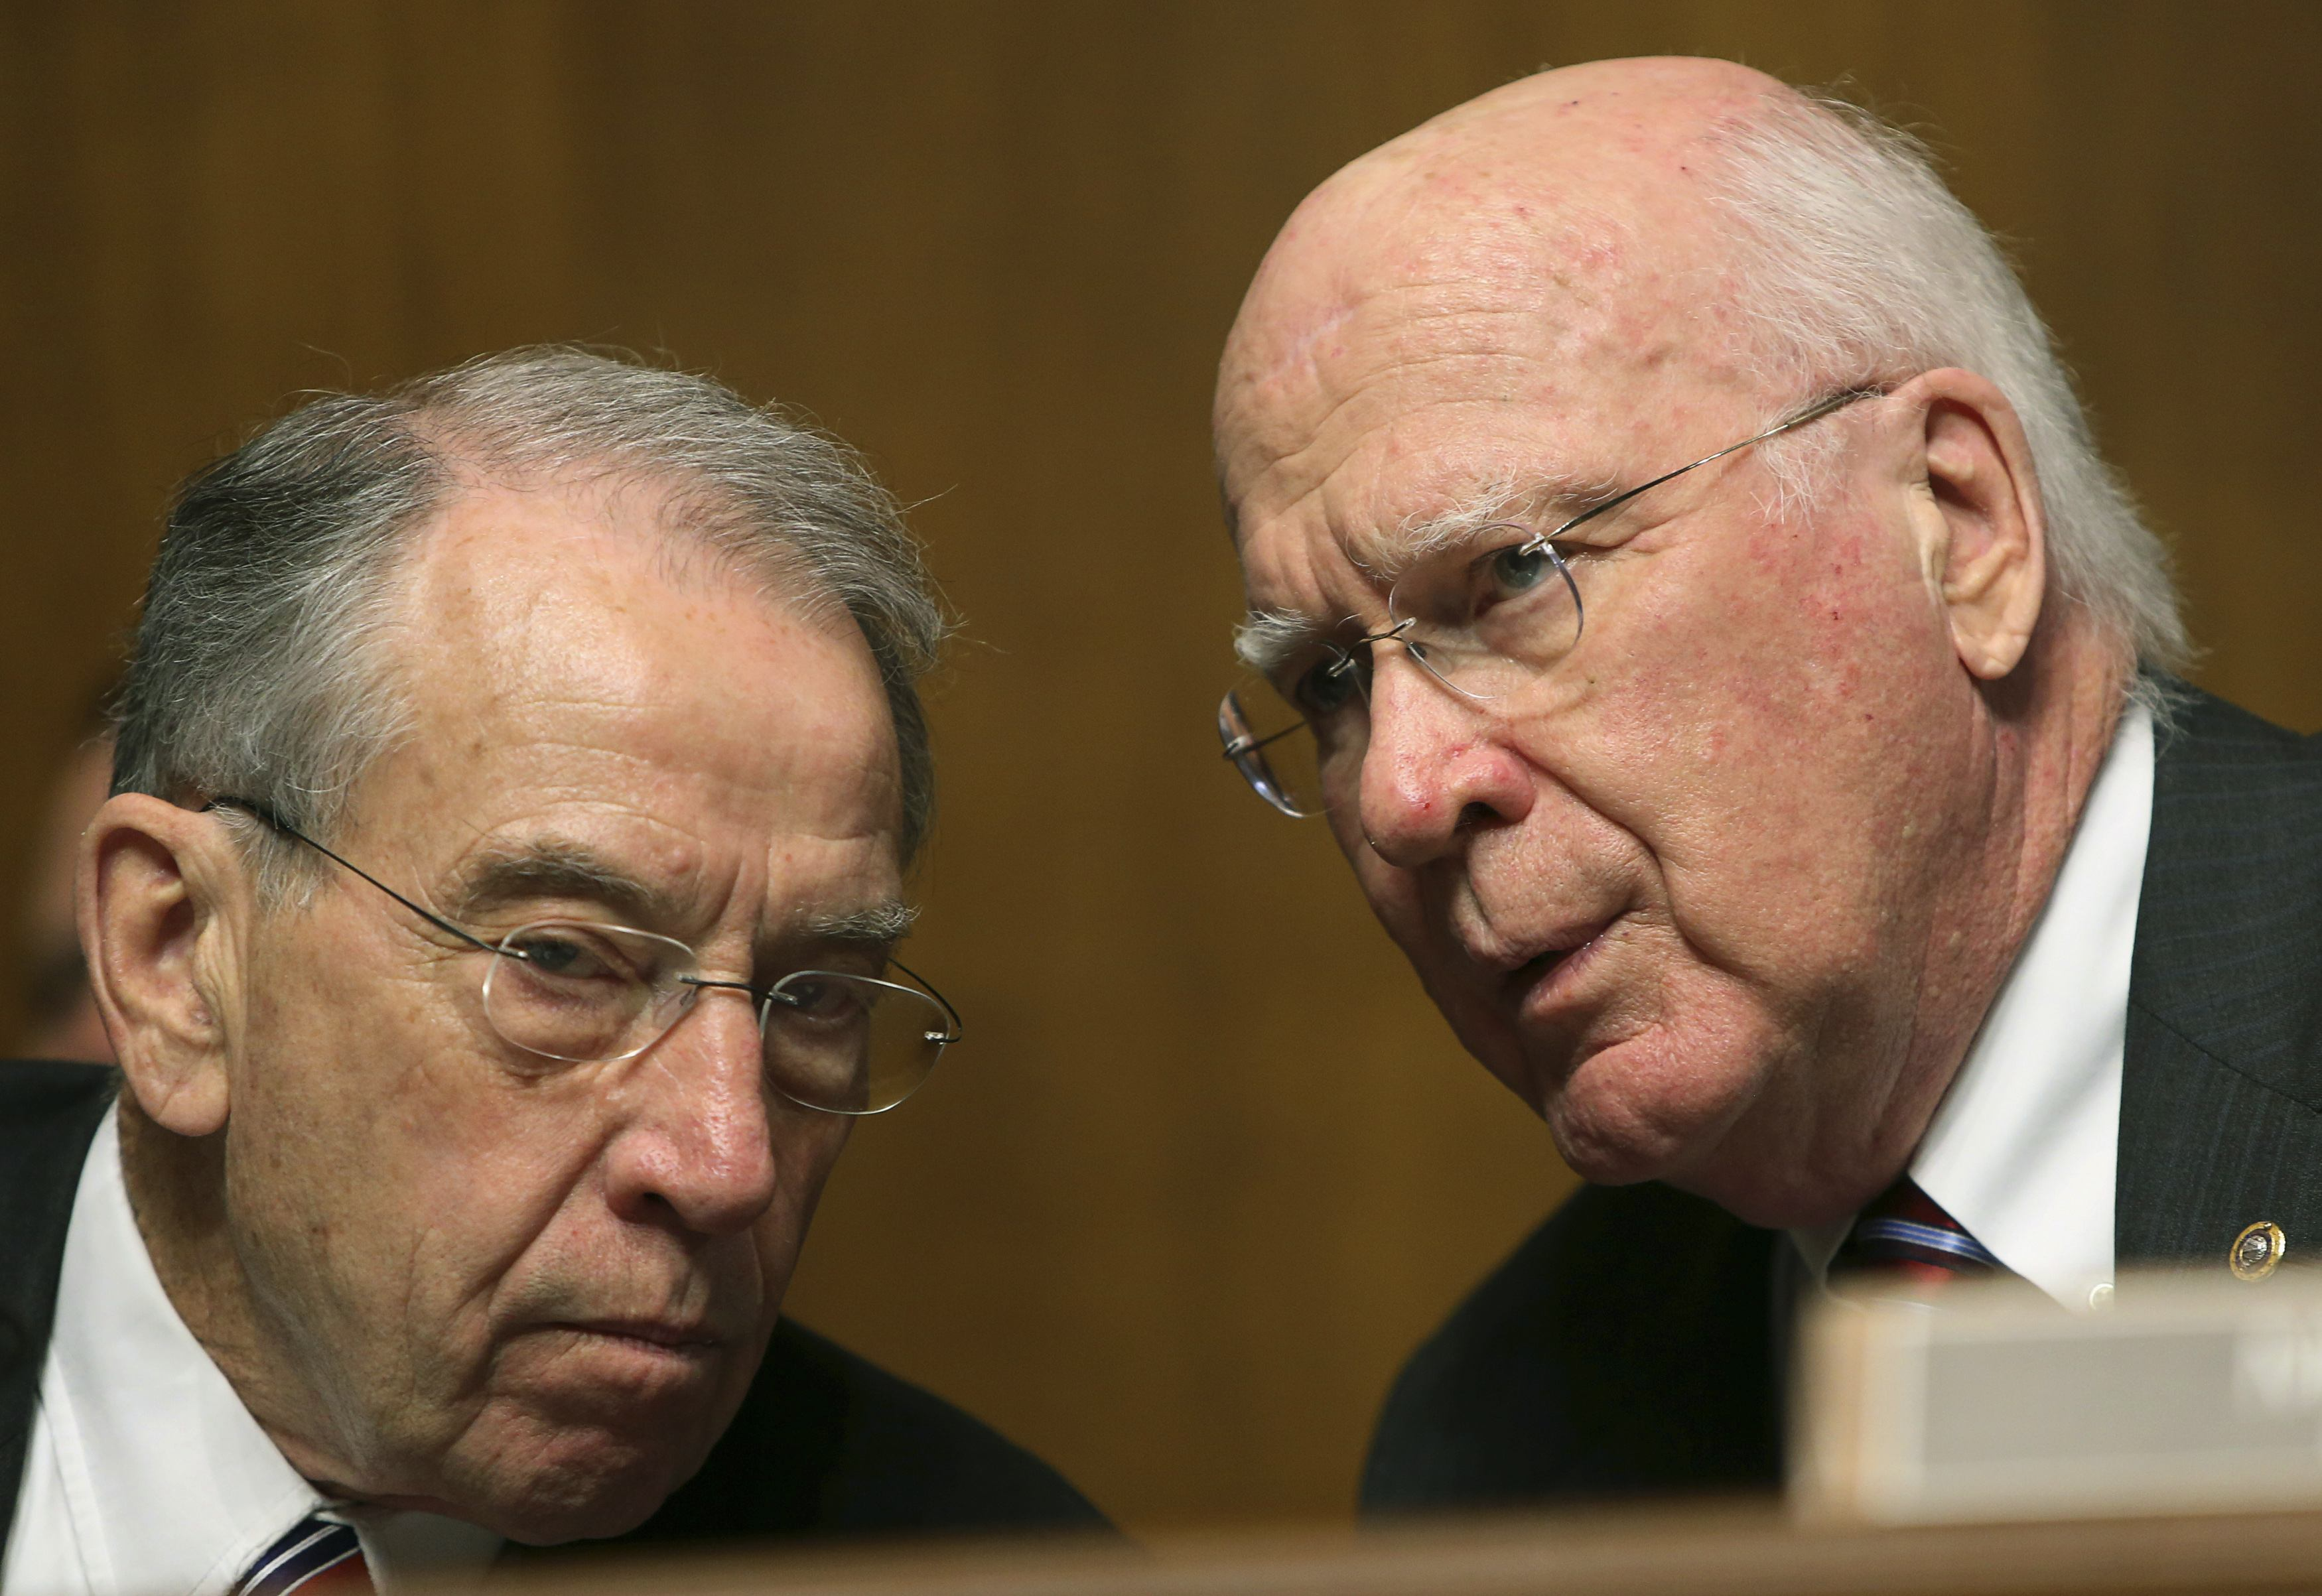 Senate Judiciary Committee members Leahy and Grassley confer during NSA hearing on Capitol Hill in Washington